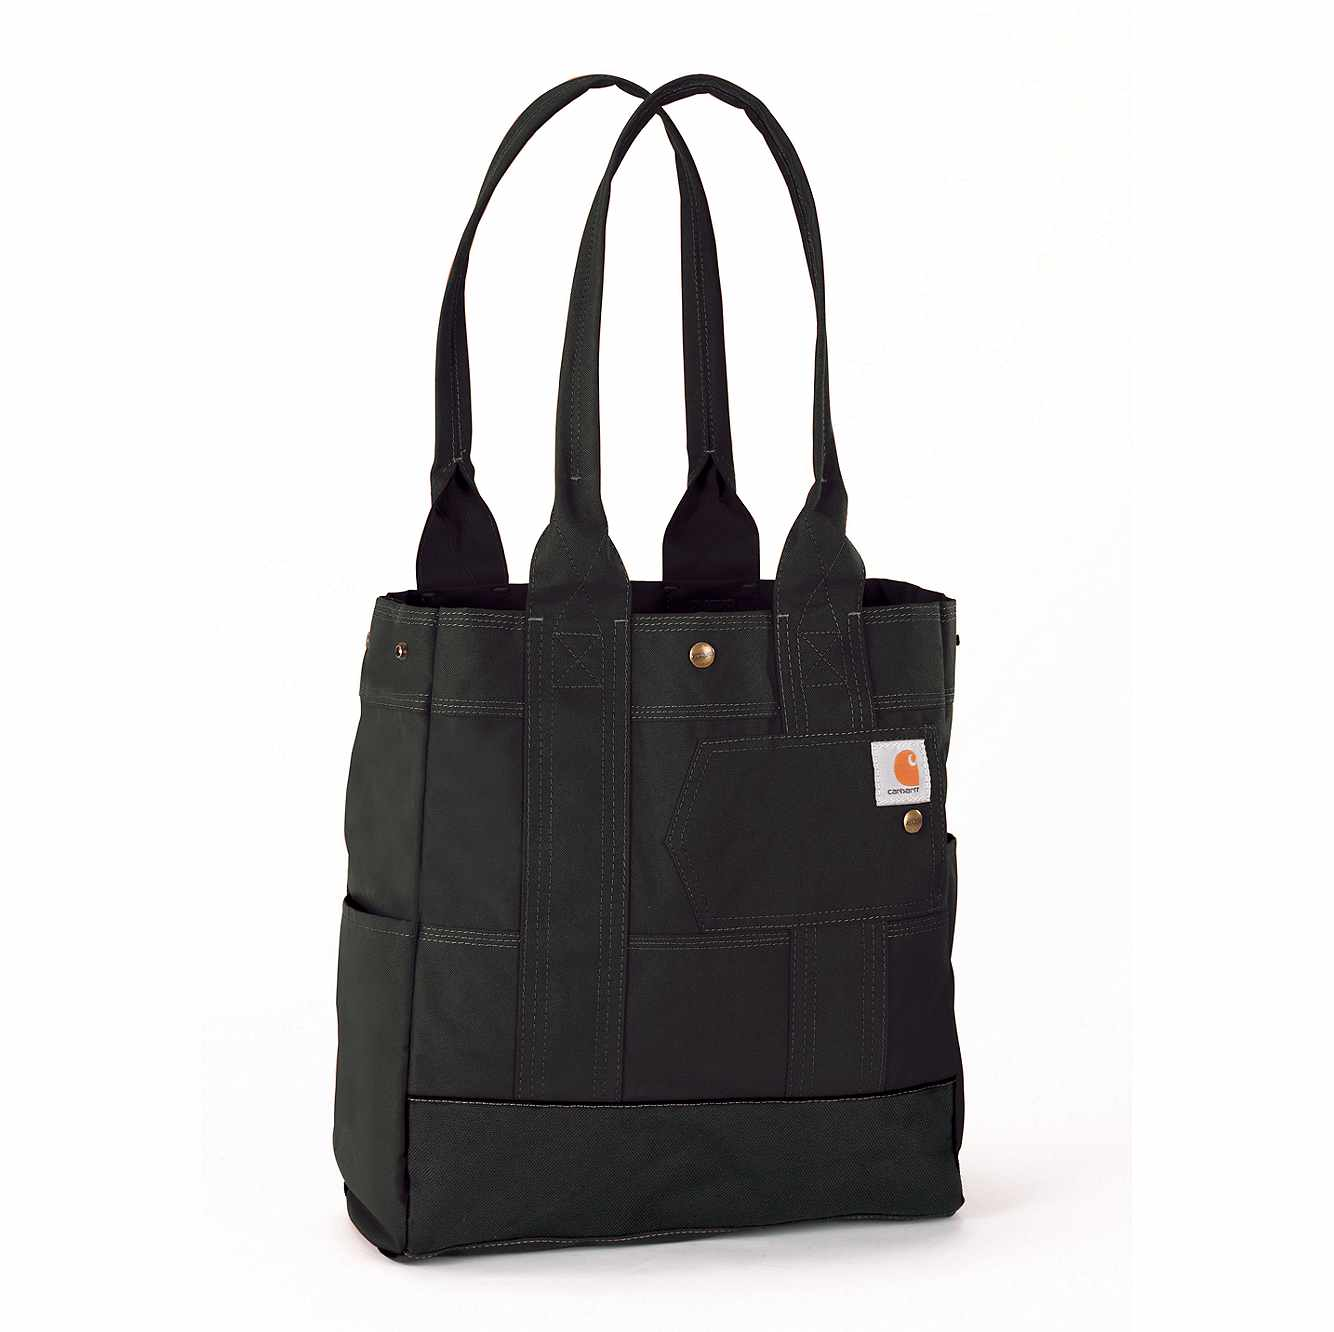 Picture of Legacy North South Tote in Black